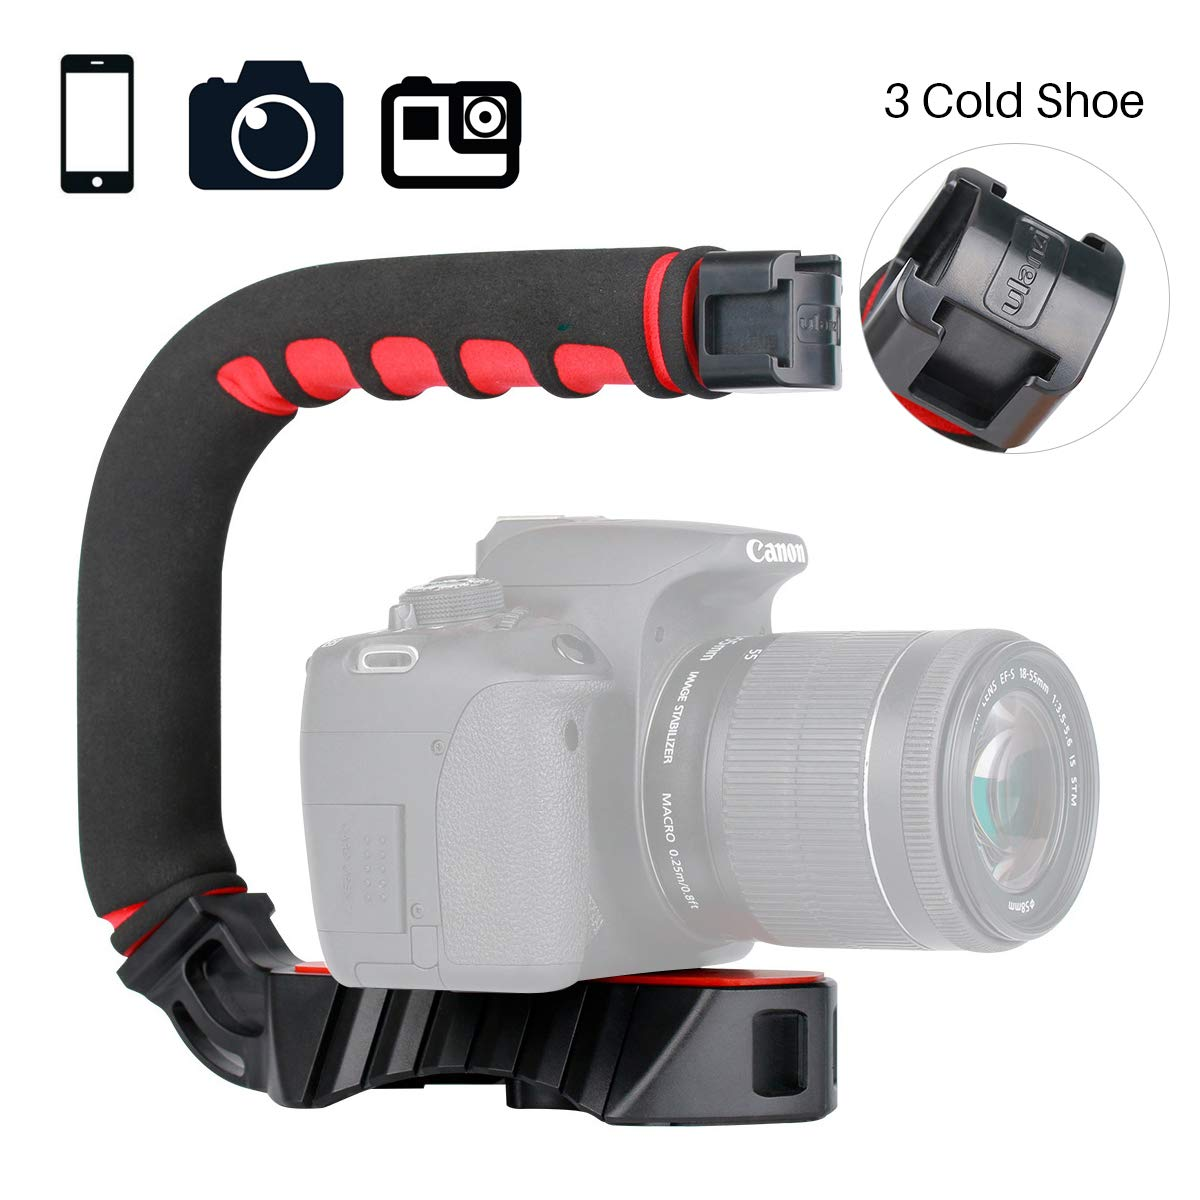 ULANZI U-Grip Pro Handheld Video Rig Steadicam with Triple Cold Shoe, Stabilizing Handle Grip Compatible for iPhone Xs 8 7plus GoPro 7 6 5 Canon NikonSony DSLR Cameras